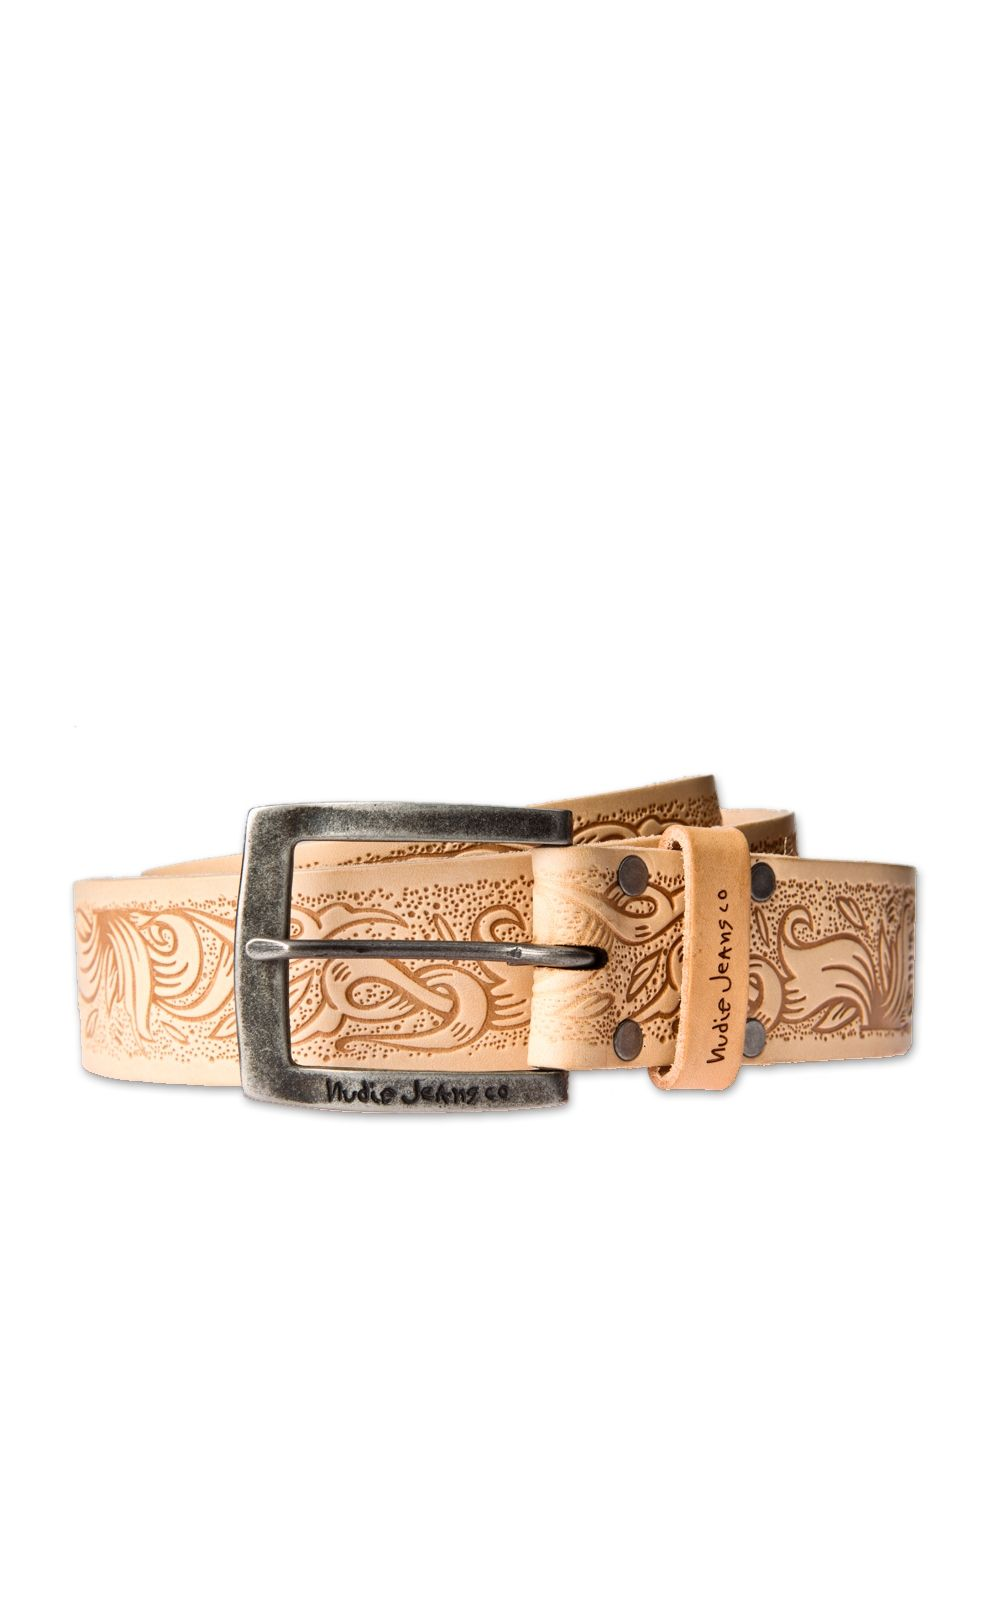 Cultizm.com - Teosson Leather Belt Natural Nudie Jeans Teosson Leather Belt Natural 180410 NATURAL